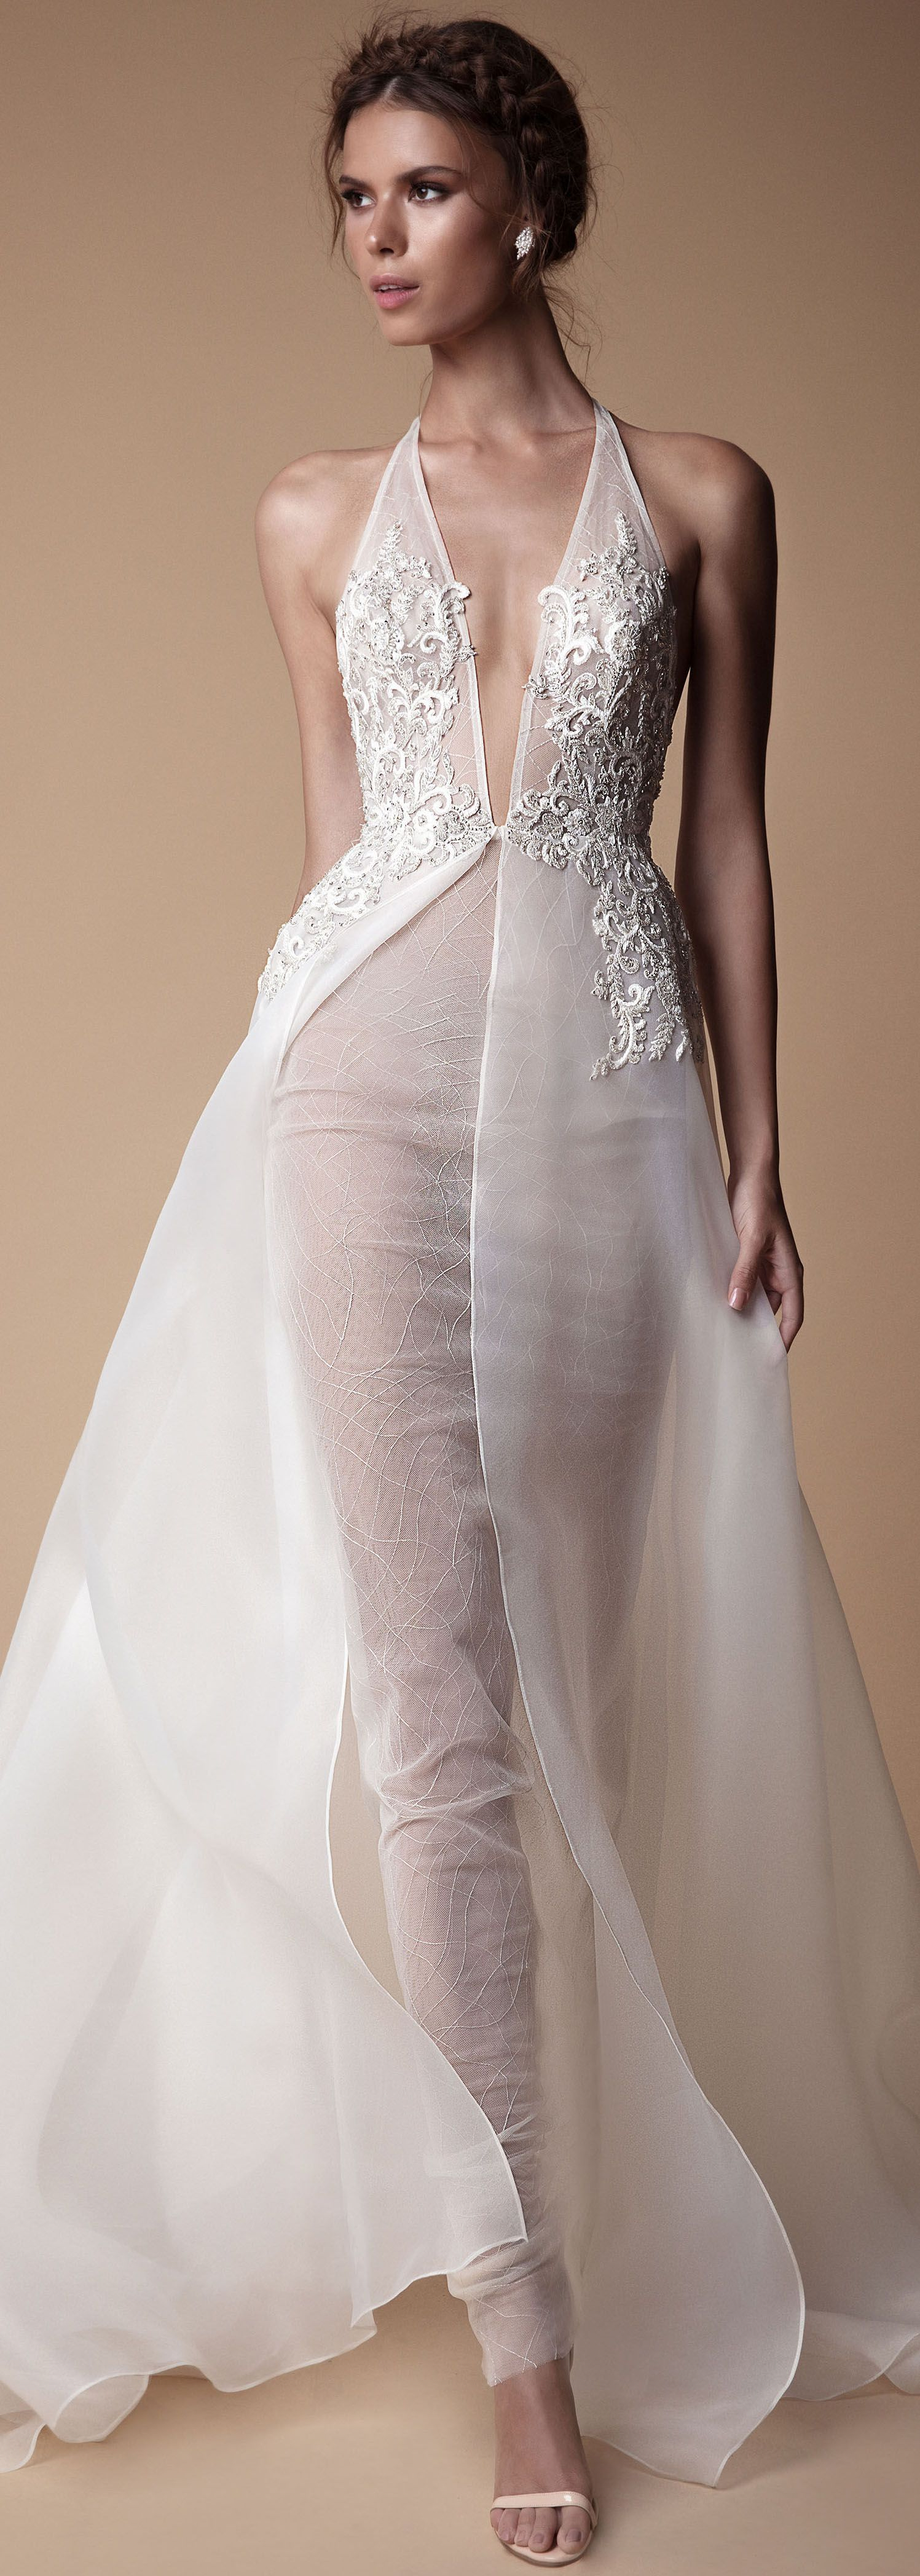 Pioneer wedding dresses  The beautiful BIANCA style from the new MUSEbyBerta collection uc